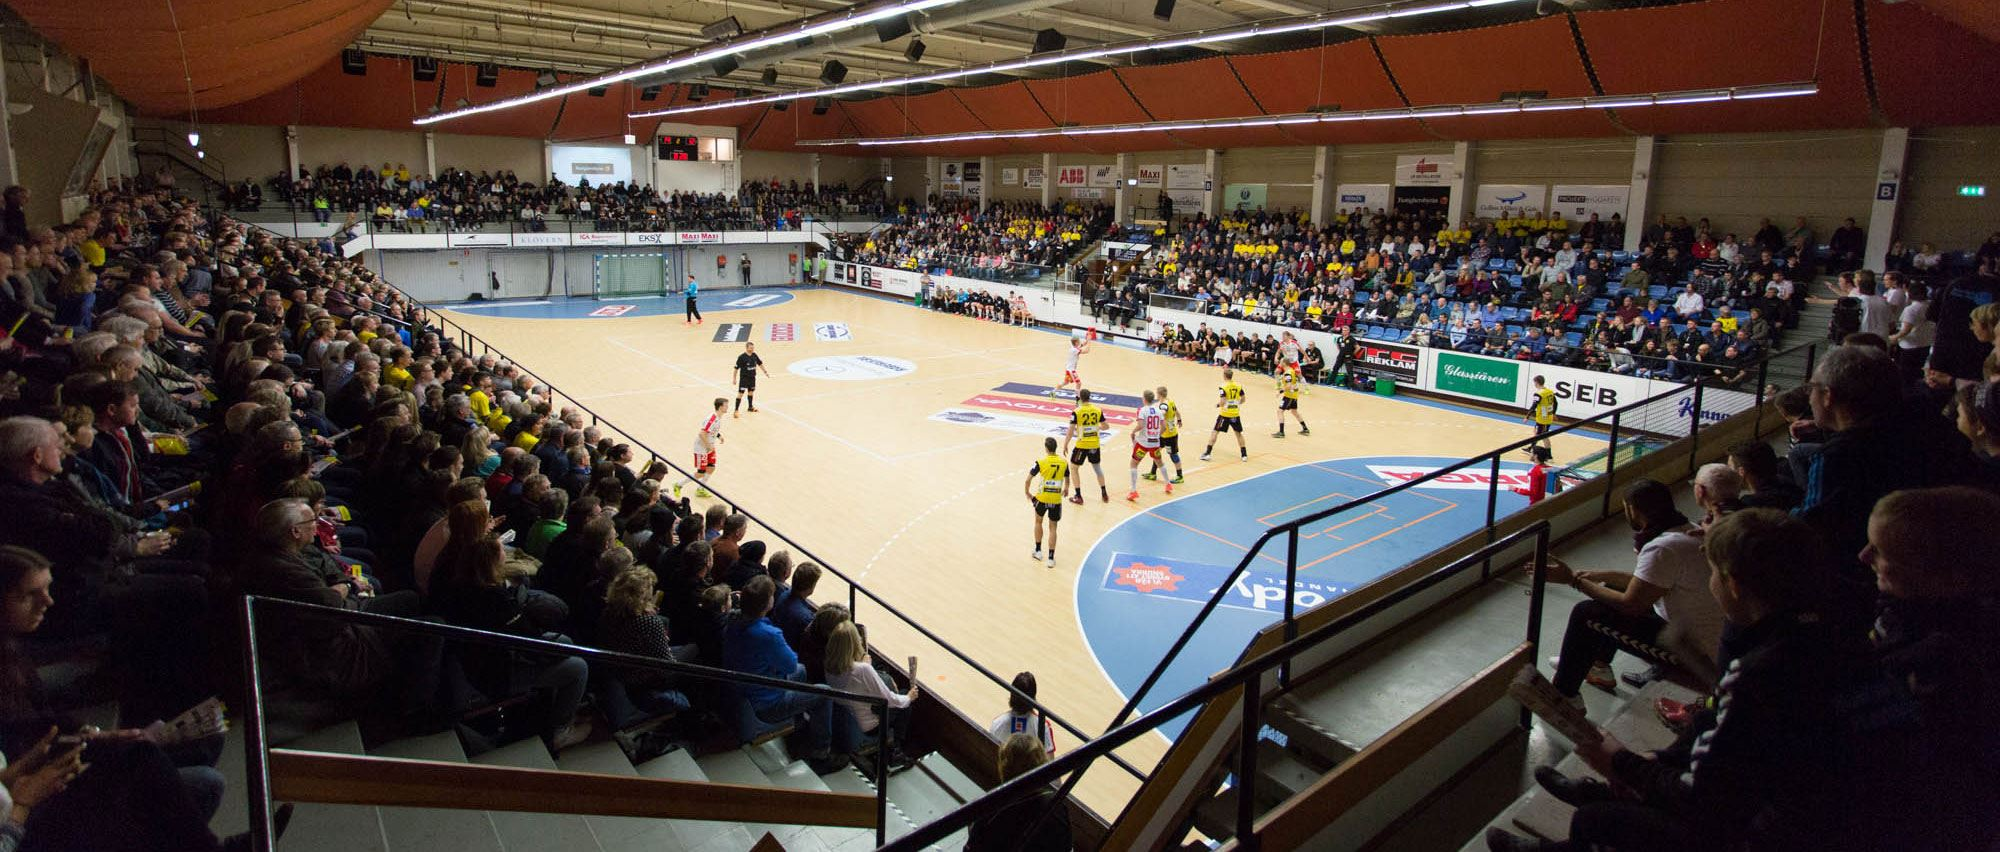 Elitserie game in handball - HiF Karlskrona - Richo HK